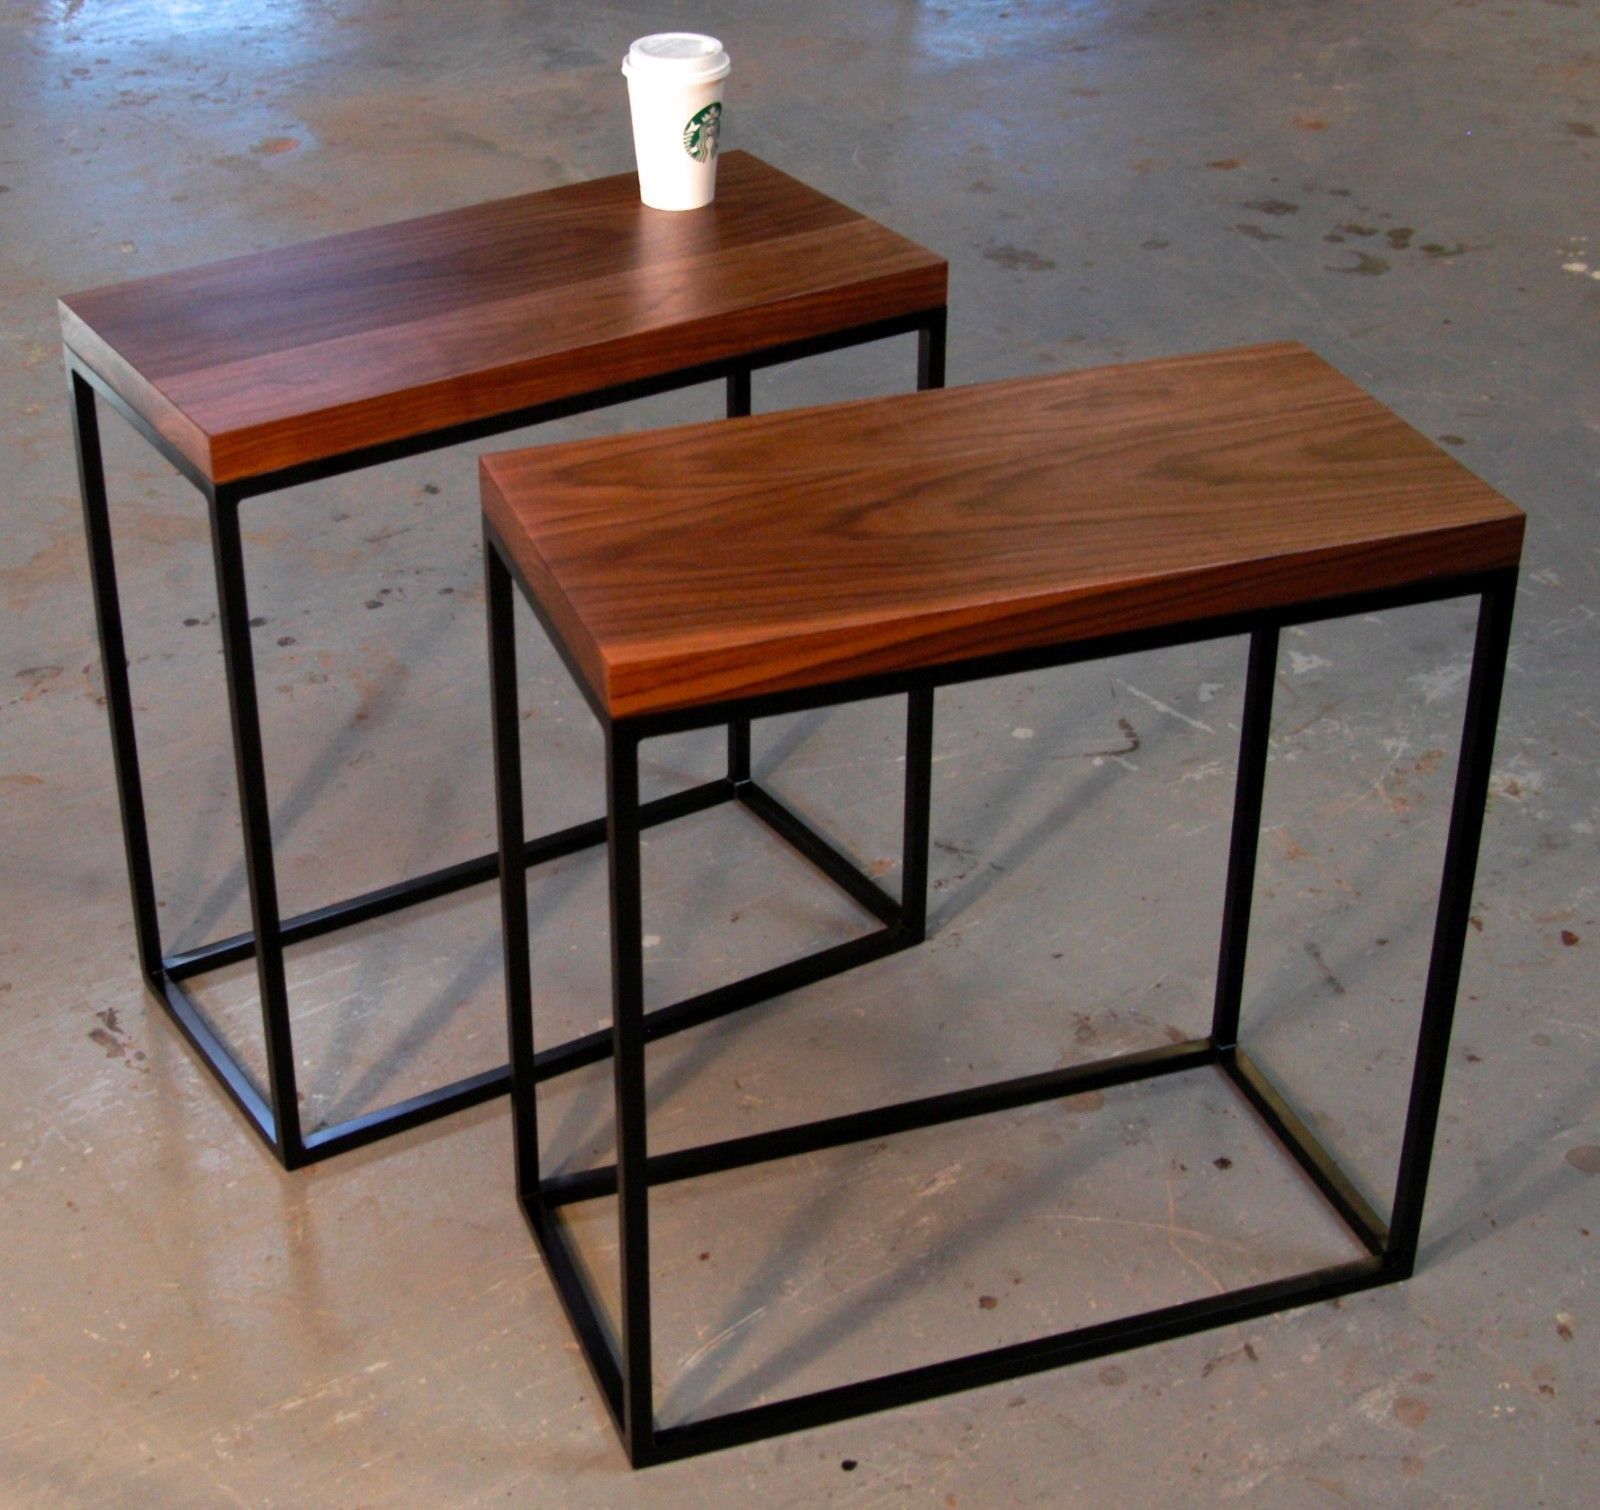 skinny walnut and square tube side tables bjorling grant